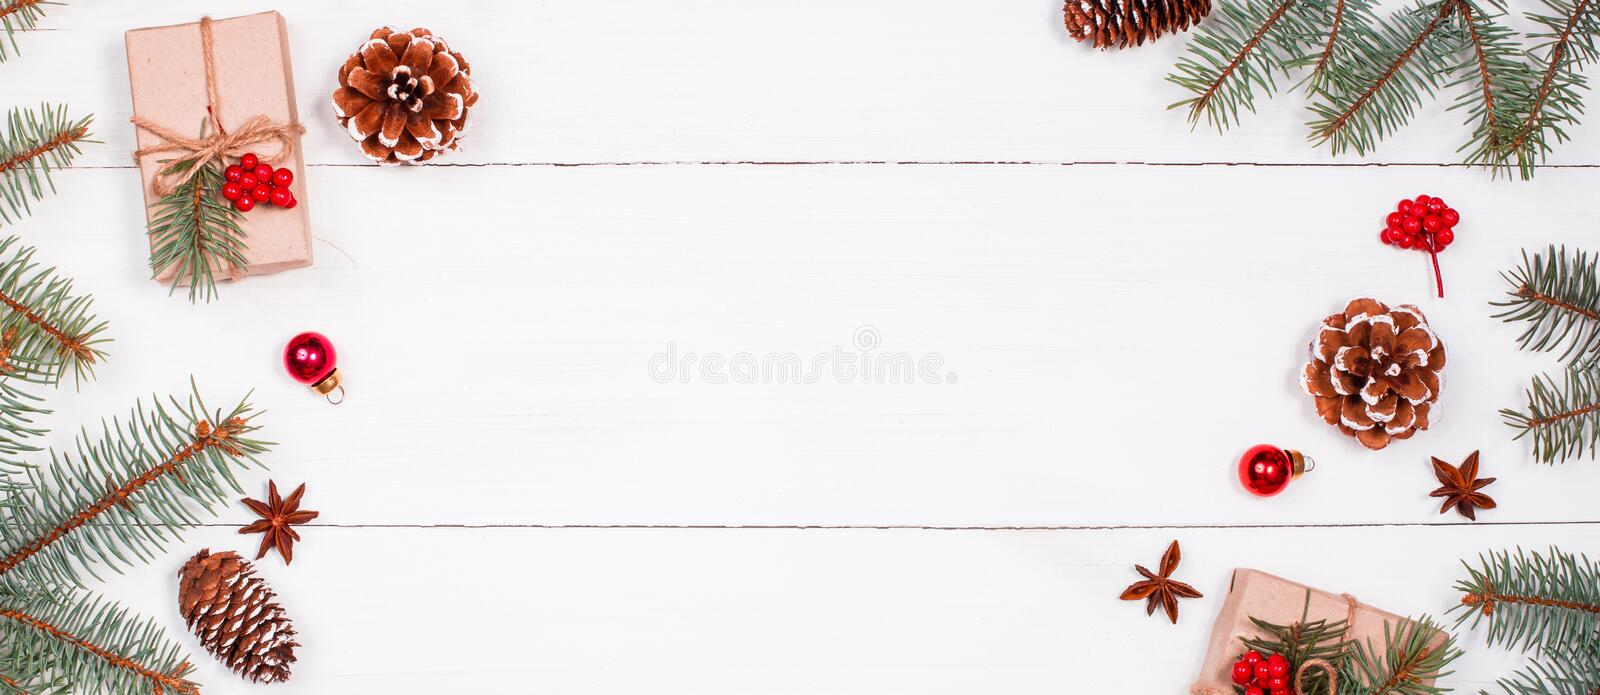 Christmas background with Christmas gift, fir branches, pine cones, snowflakes, red decorations. royalty free stock photography